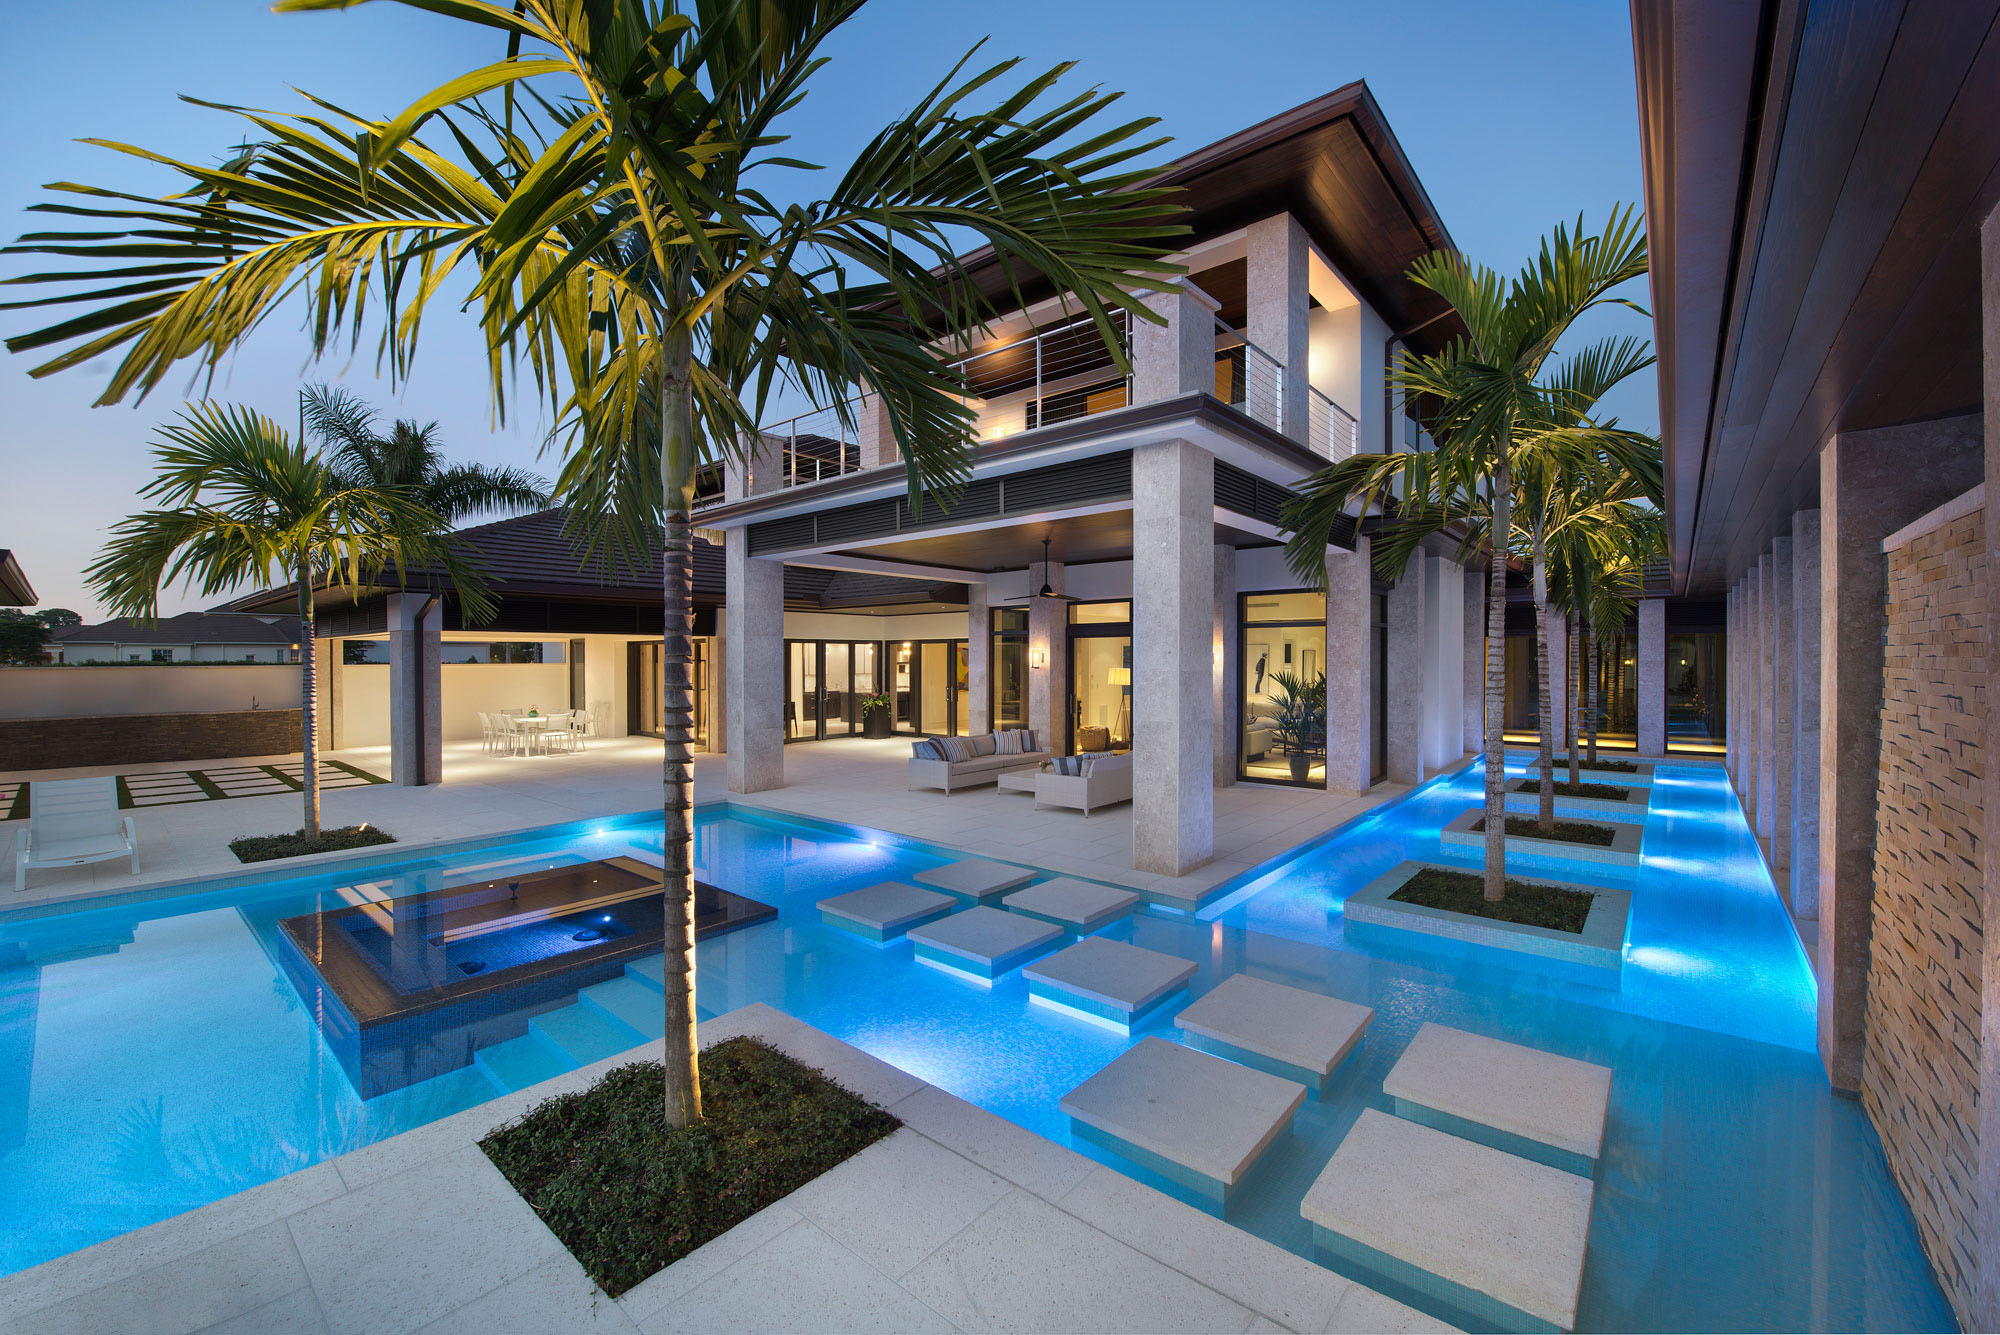 Custom dream home in florida with elegant swimming pool for Luxury home architect